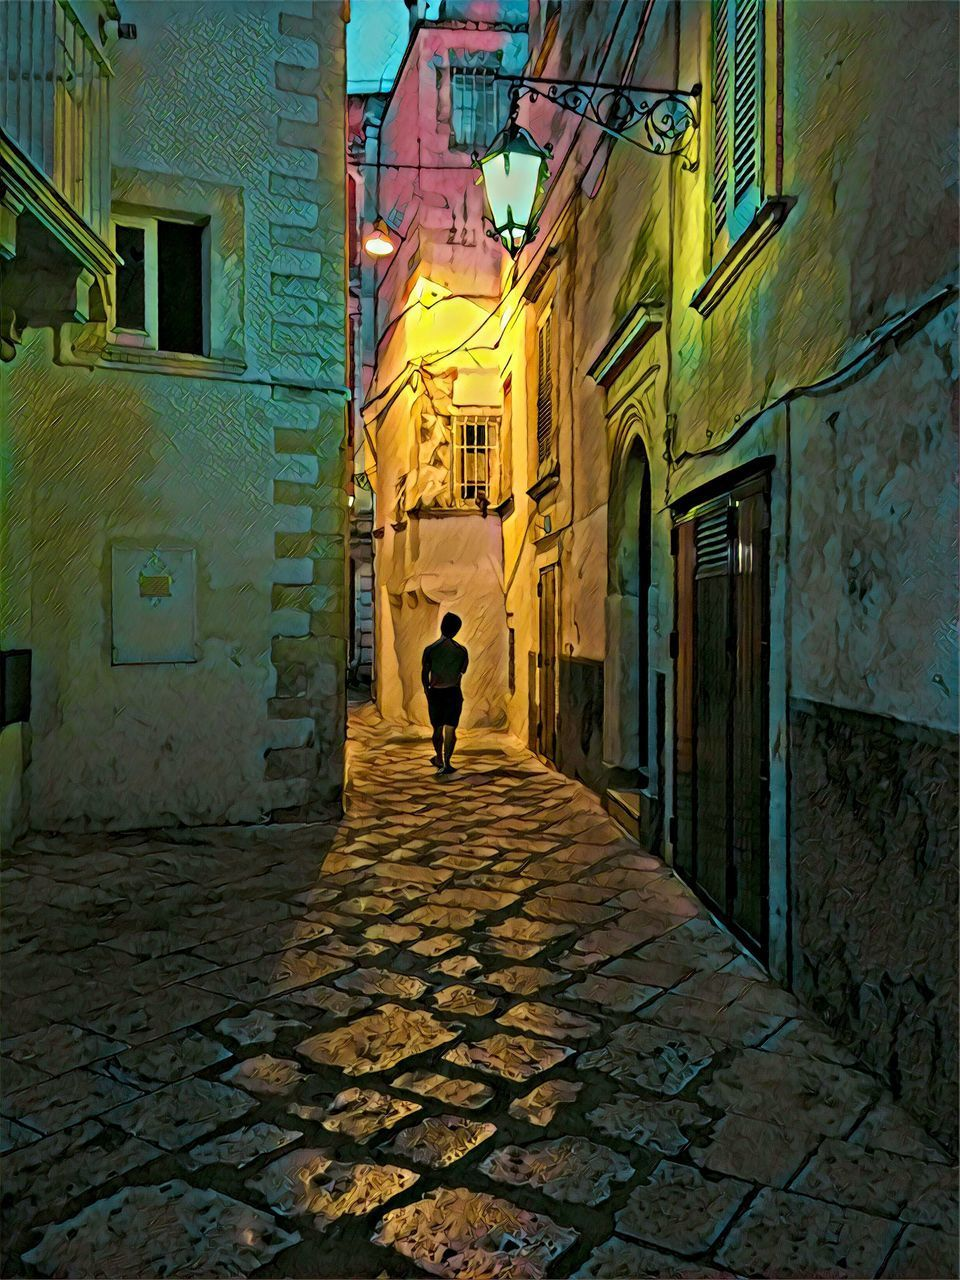 architecture, built structure, building exterior, one person, real people, building, city, street, walking, rear view, full length, lifestyles, cobblestone, direction, men, residential district, footpath, the way forward, alley, outdoors, paving stone